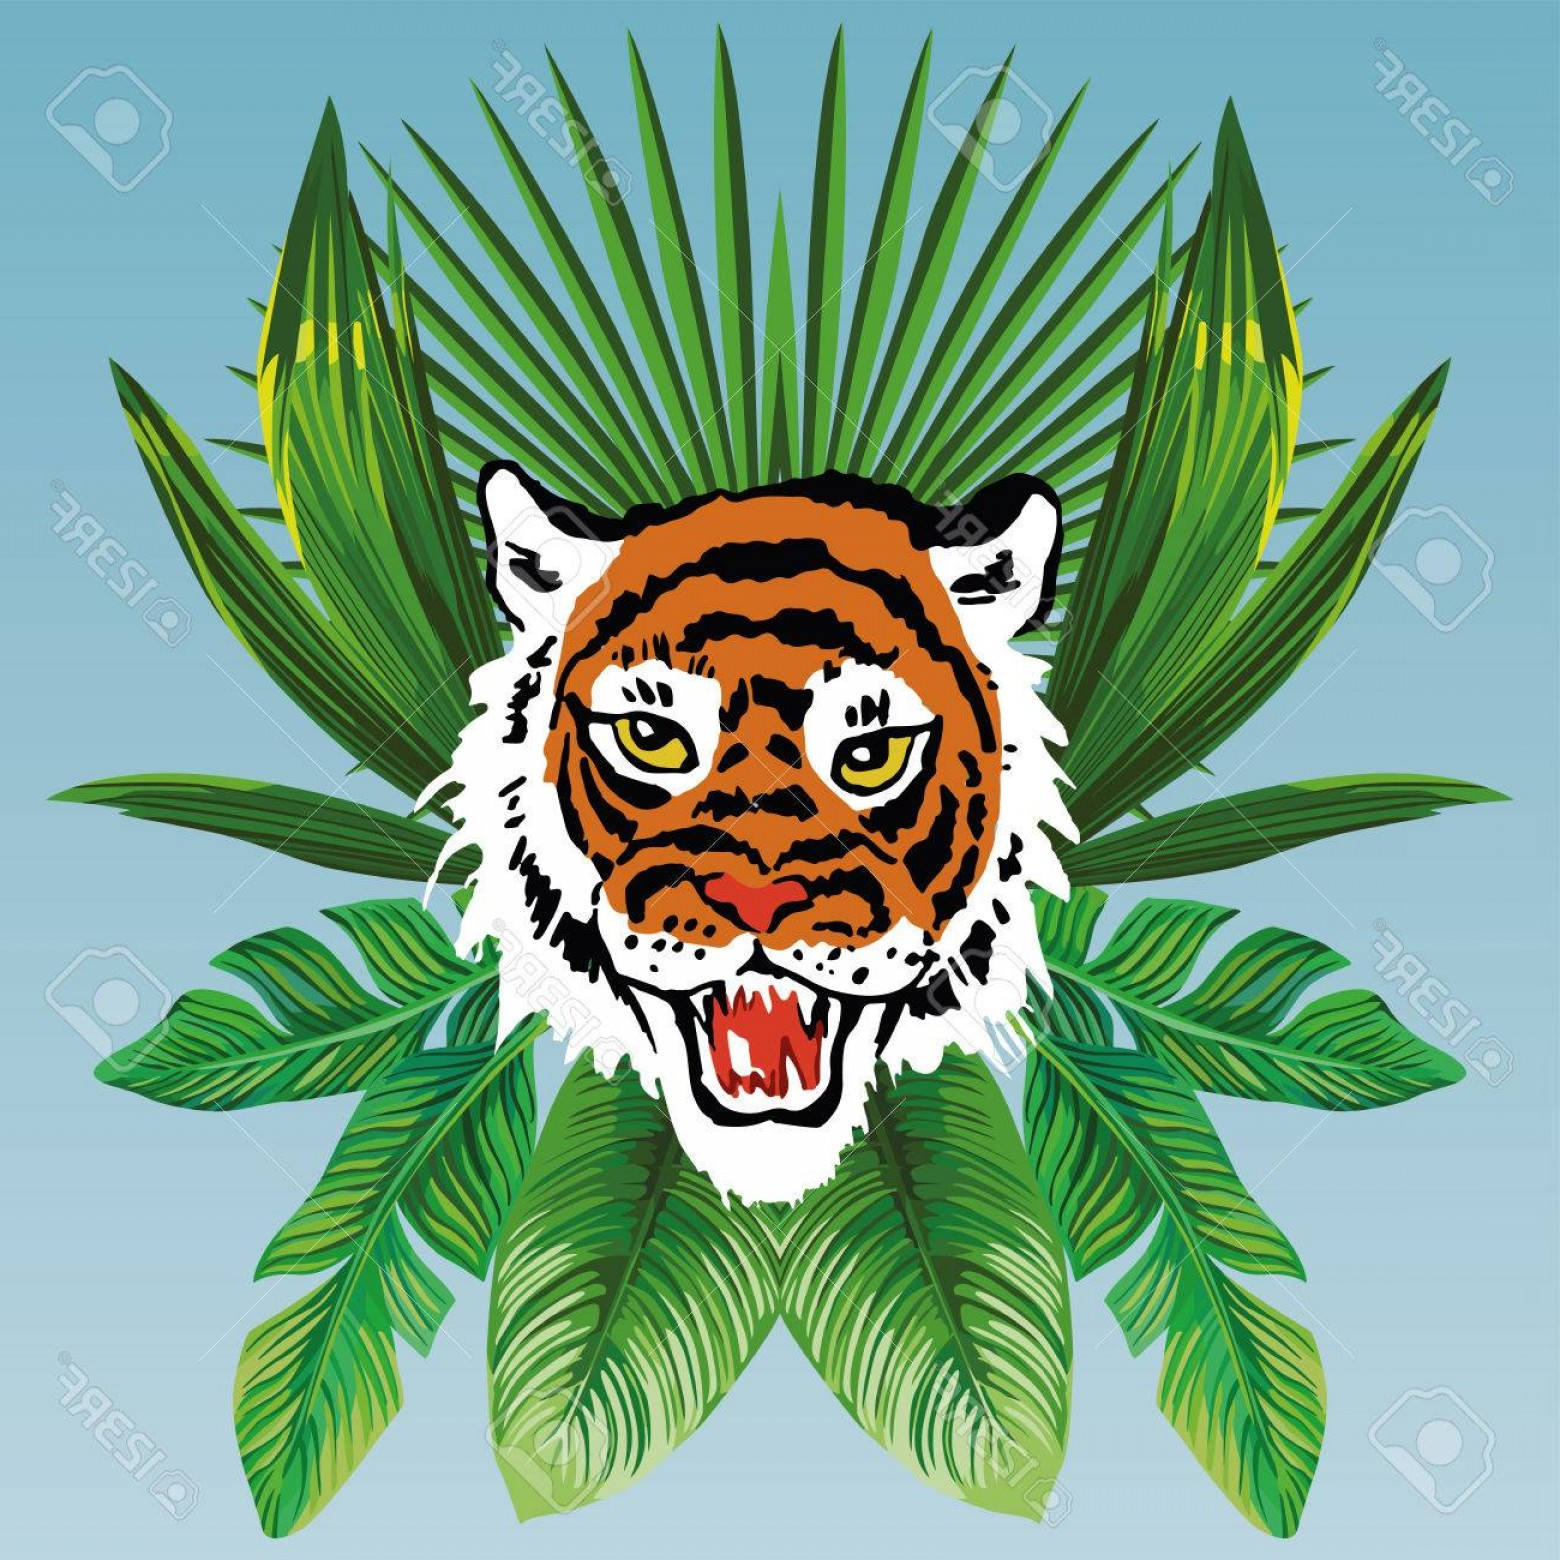 Green Tiger Vector: Photostock Vector Vector Composition Of Tropical Palm Leaves And Angry Isolated Tiger Head On A Blue Background Wallpa